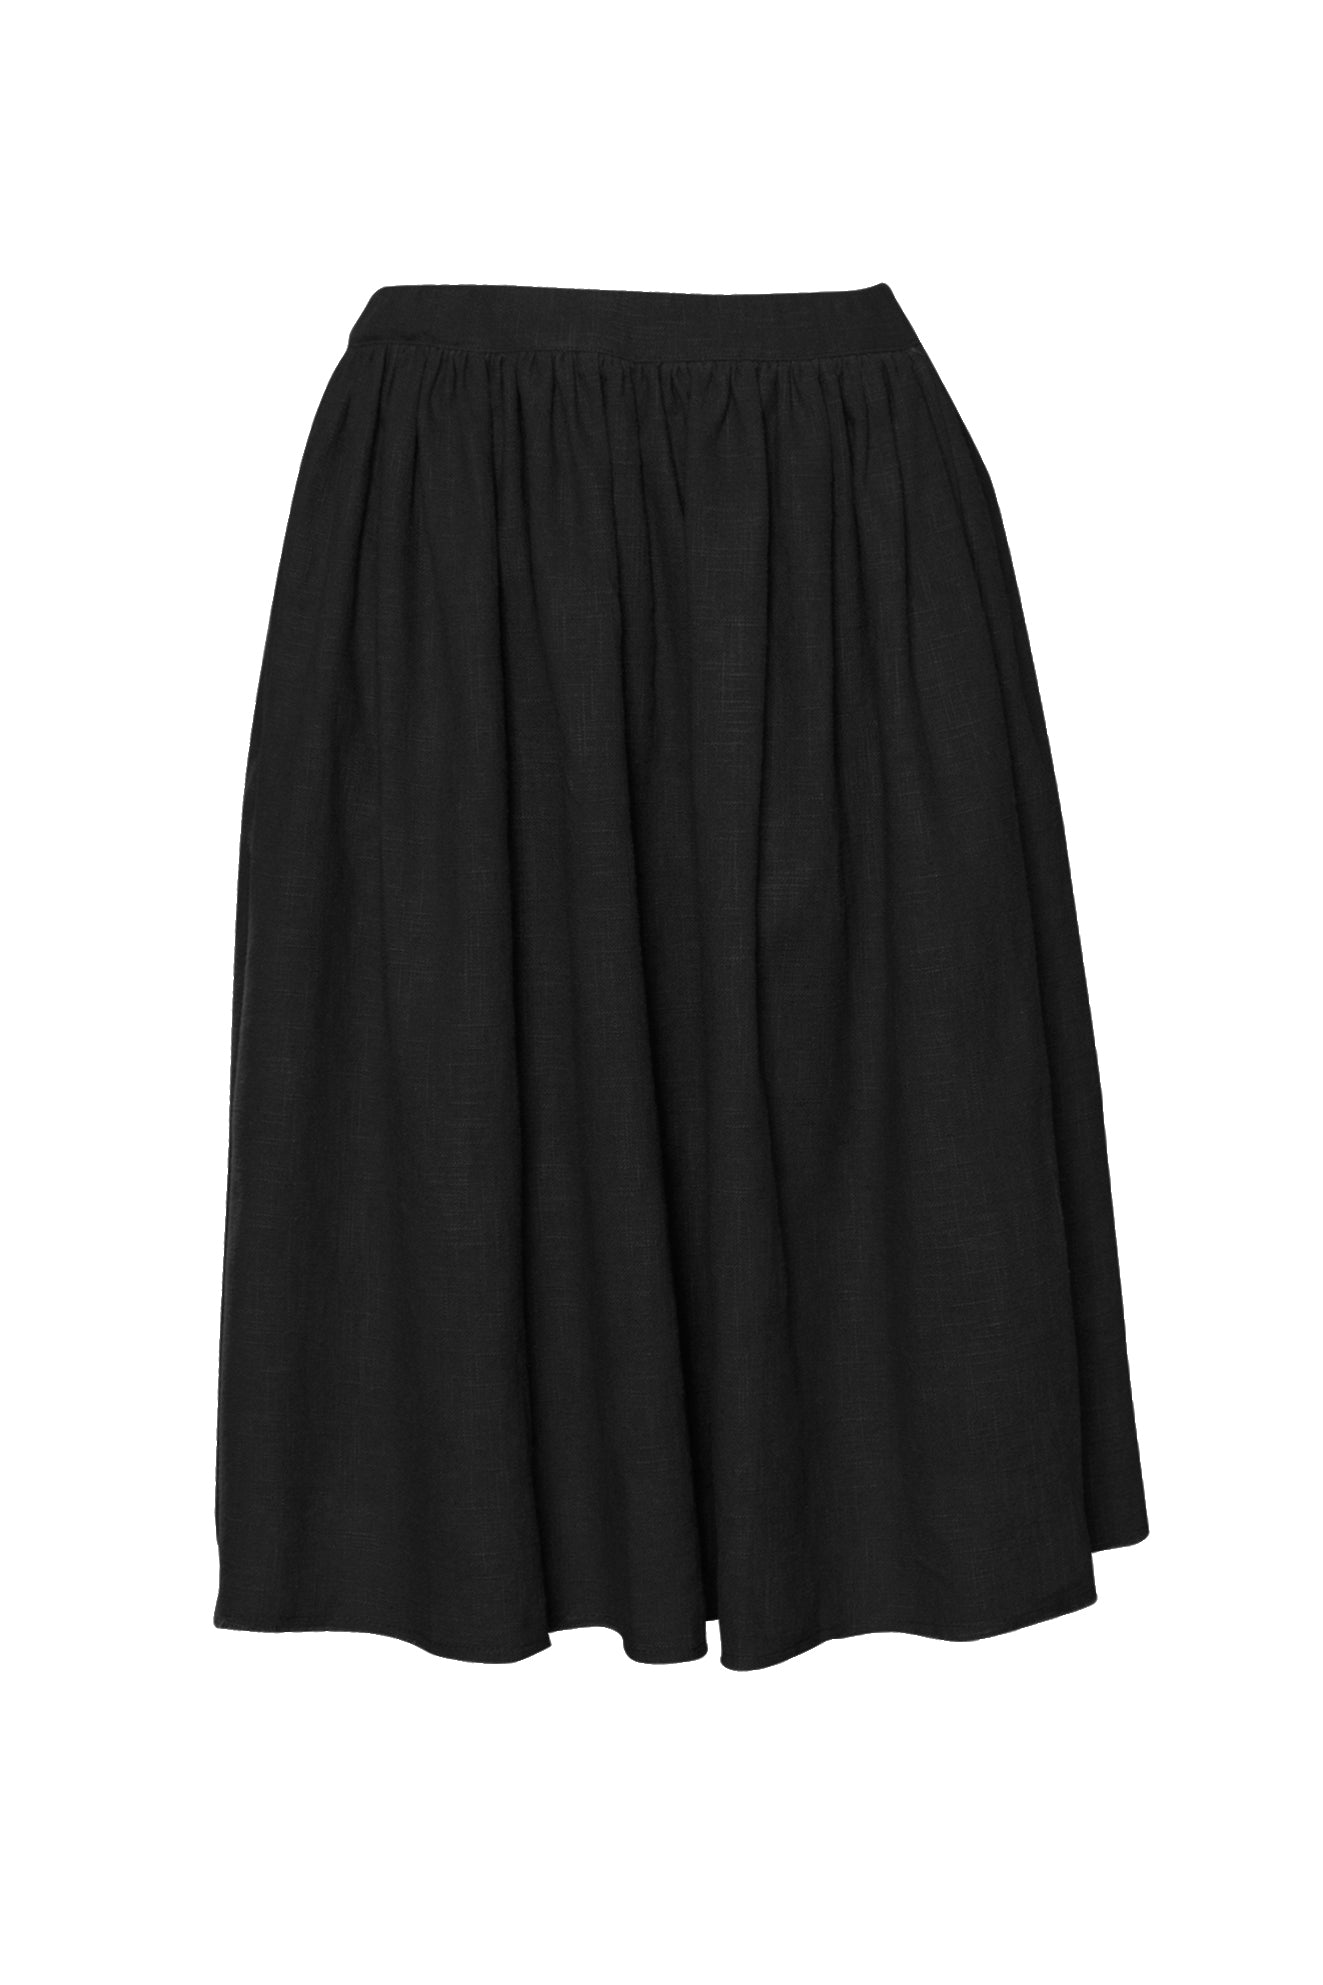 GIANNETTI BLACK LINEN SKIRT